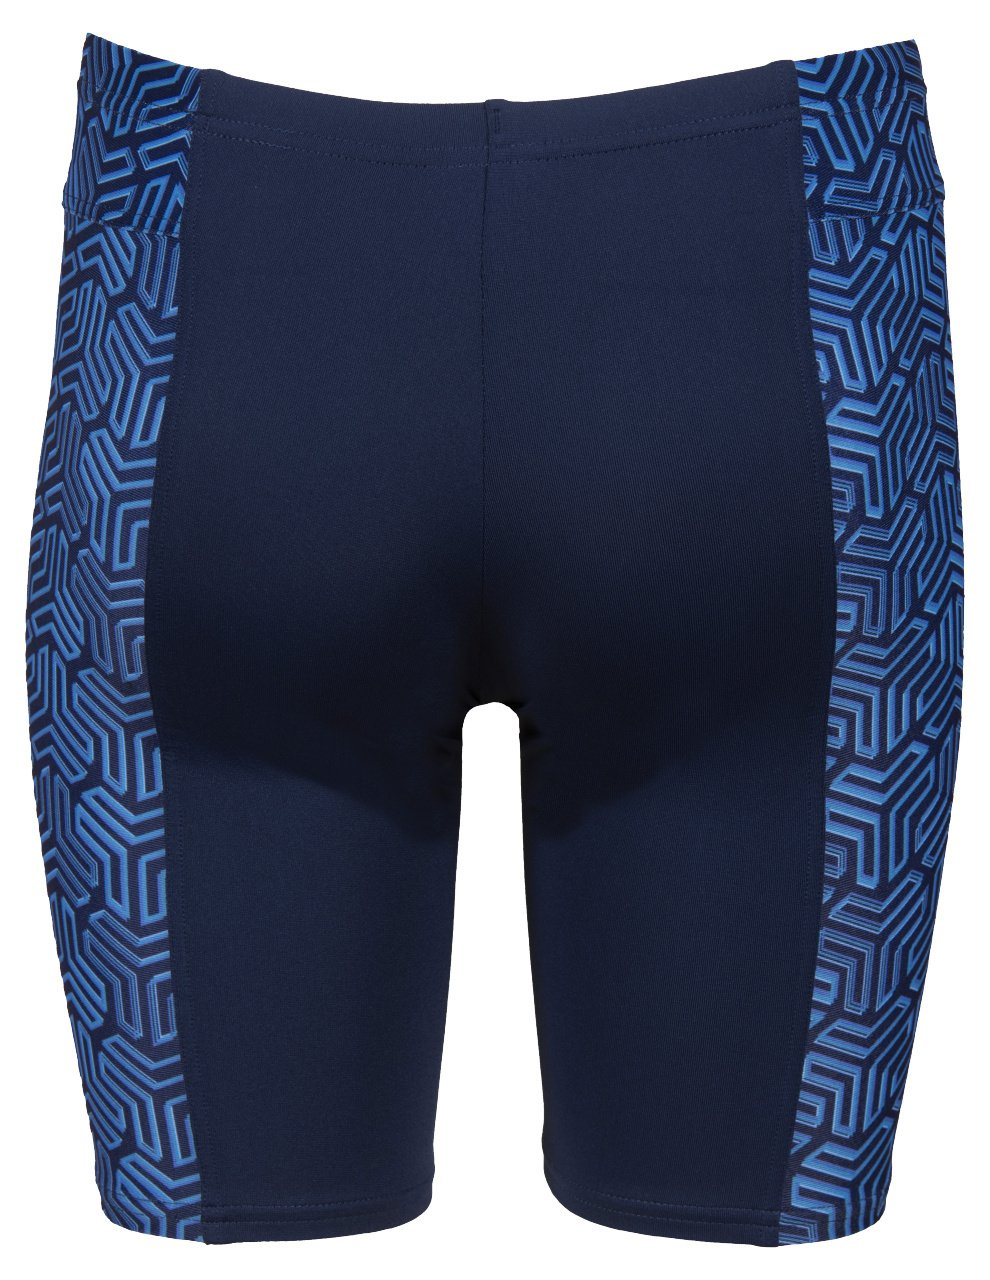 Kikko Junior Jammer - Navy/Multi